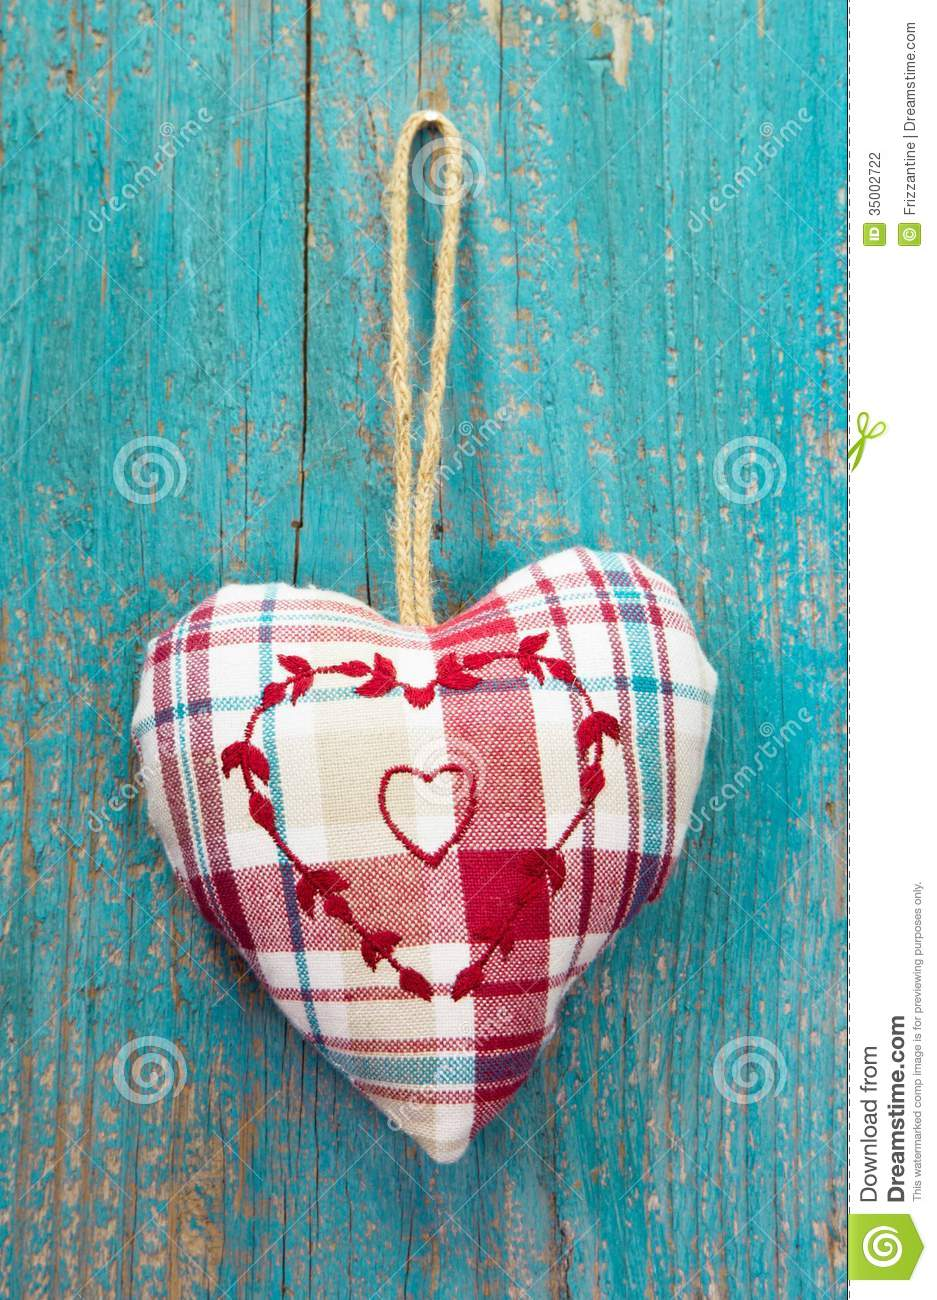 Rustic Heart On Turquoise Wooden Surface For Wedding Birthday Stock Photography  Image 35002722